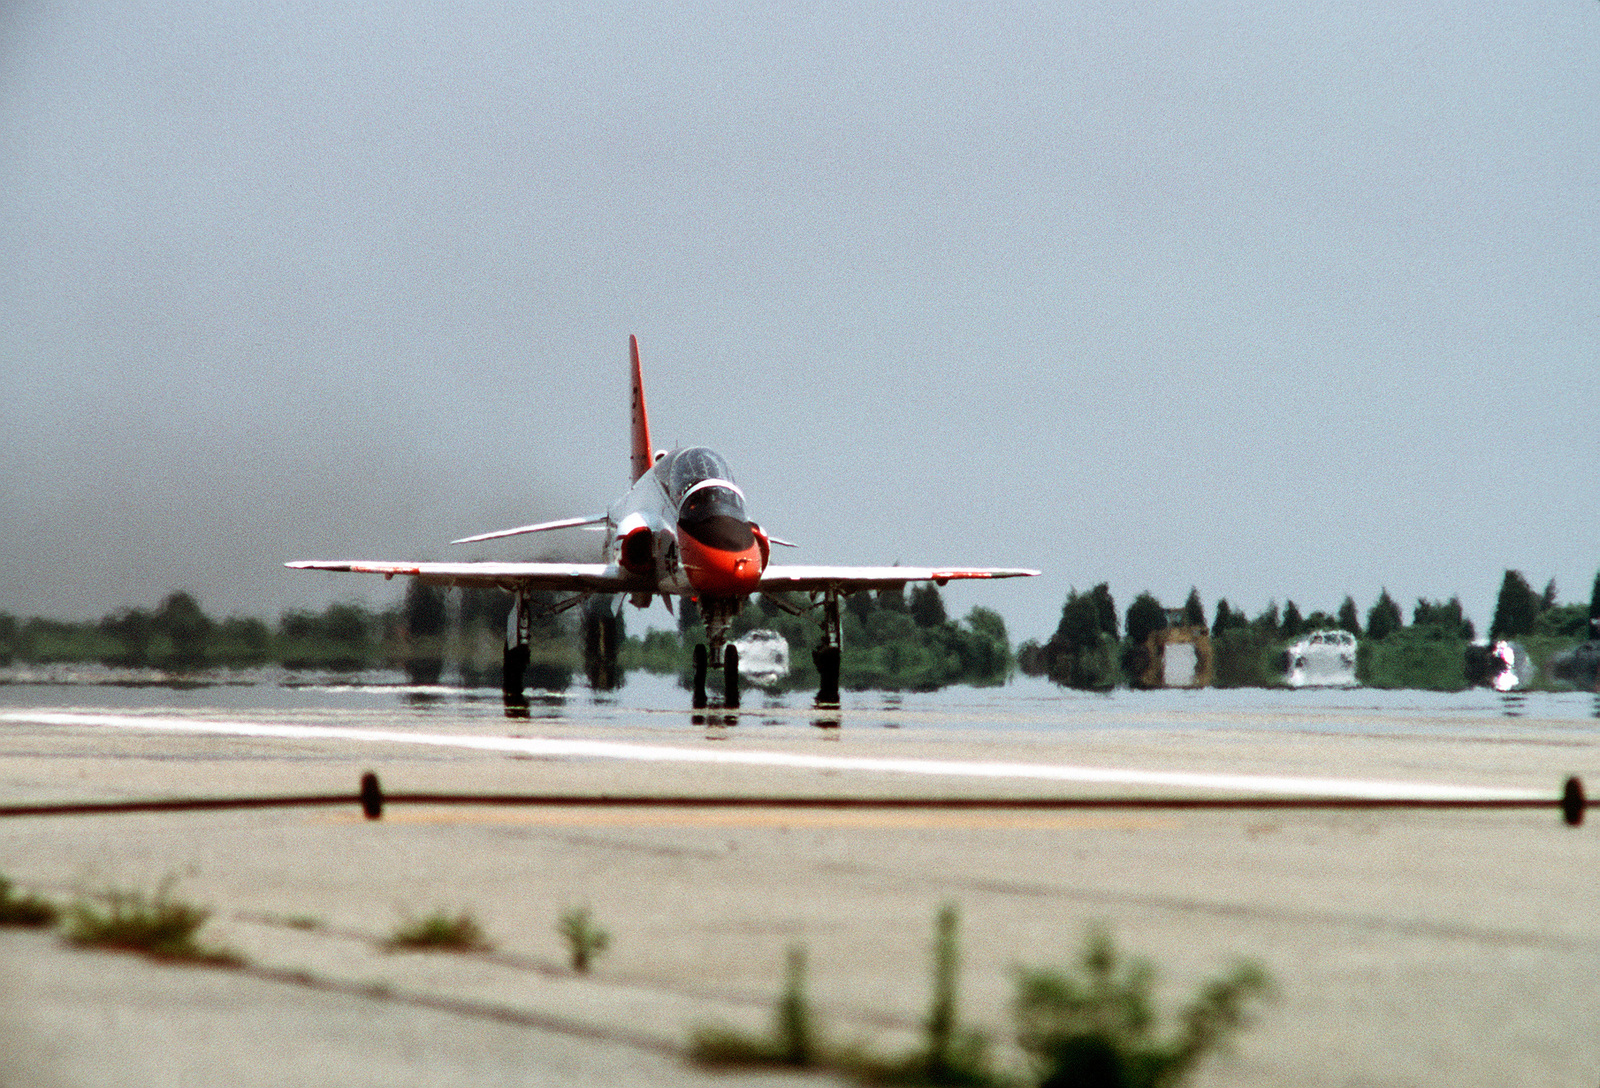 A T-45A Goshawk aircraft rolls down the runway after completing an evaluation flight. The Navy will eventually procure about 300 of these aircraft, which are capable of landing aboard aircraft carriers, to replace the T-2C Buckeye and TA-4J Skyhawk aircraft in the intermediate and advanced student pilot training role